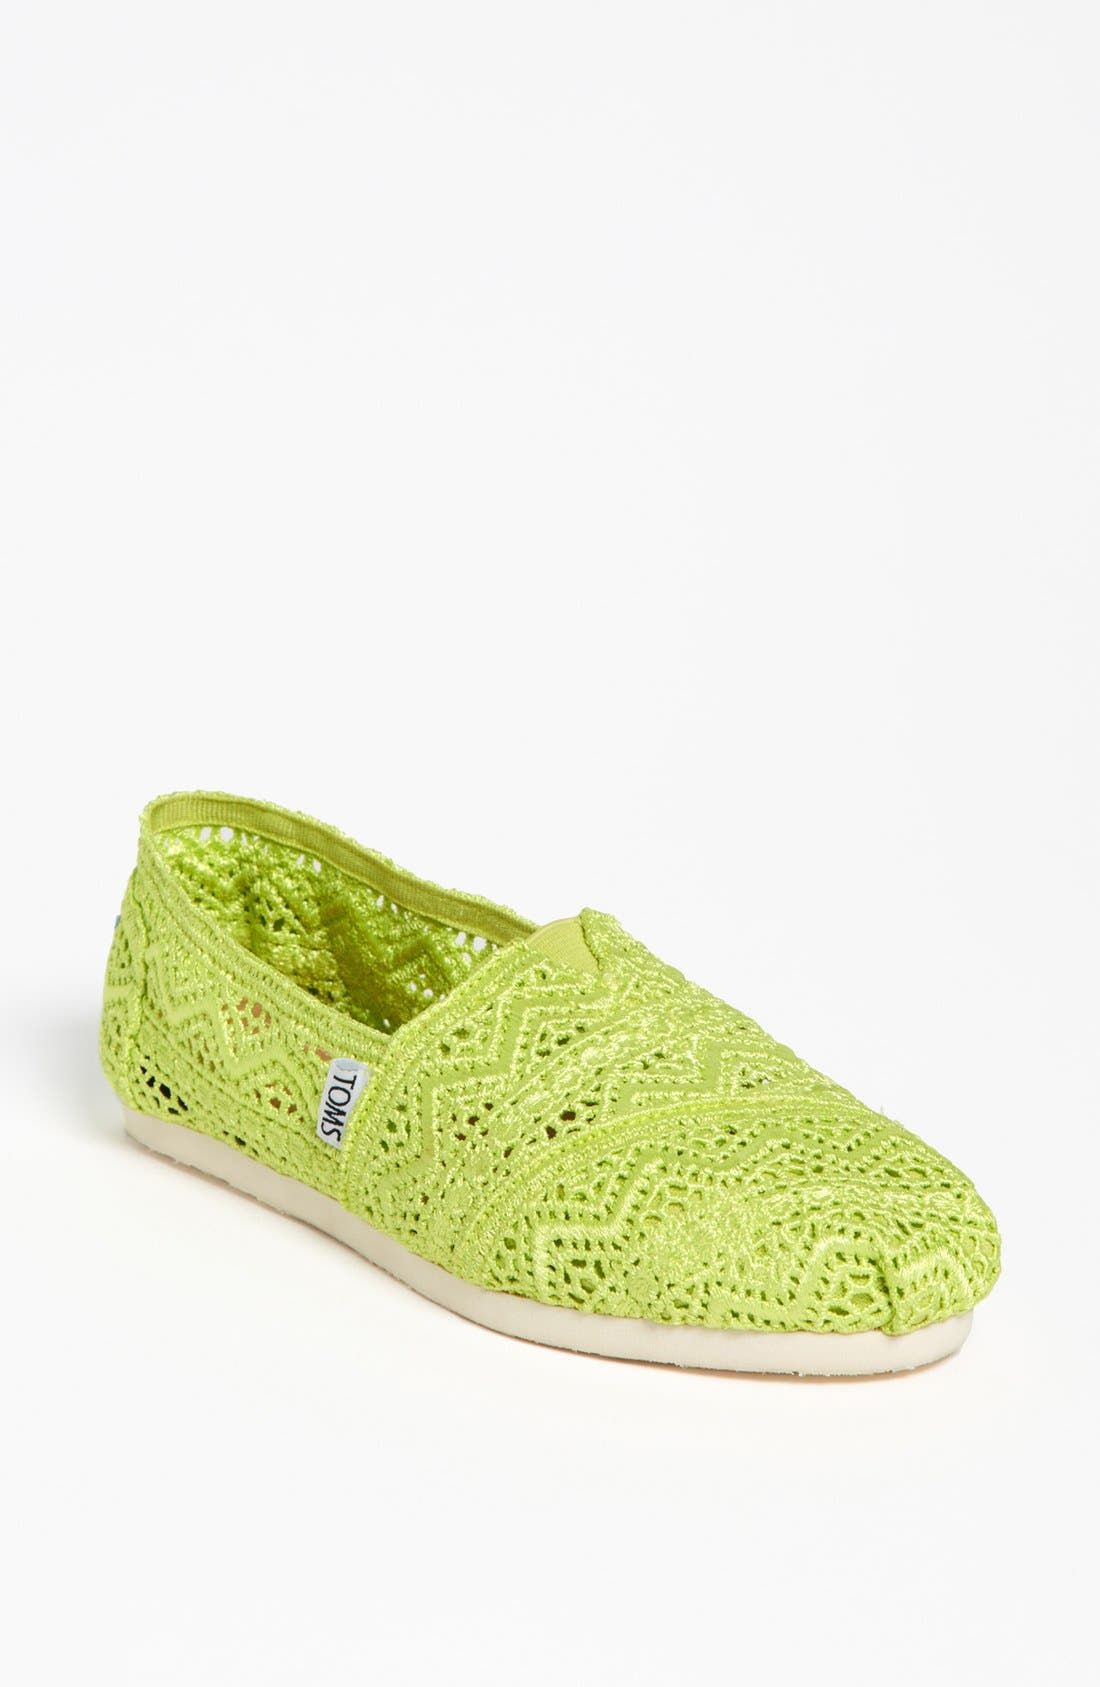 Alternate Image 1 Selected - TOMS 'Classic - Neon' Crochet Slip-On (Women)